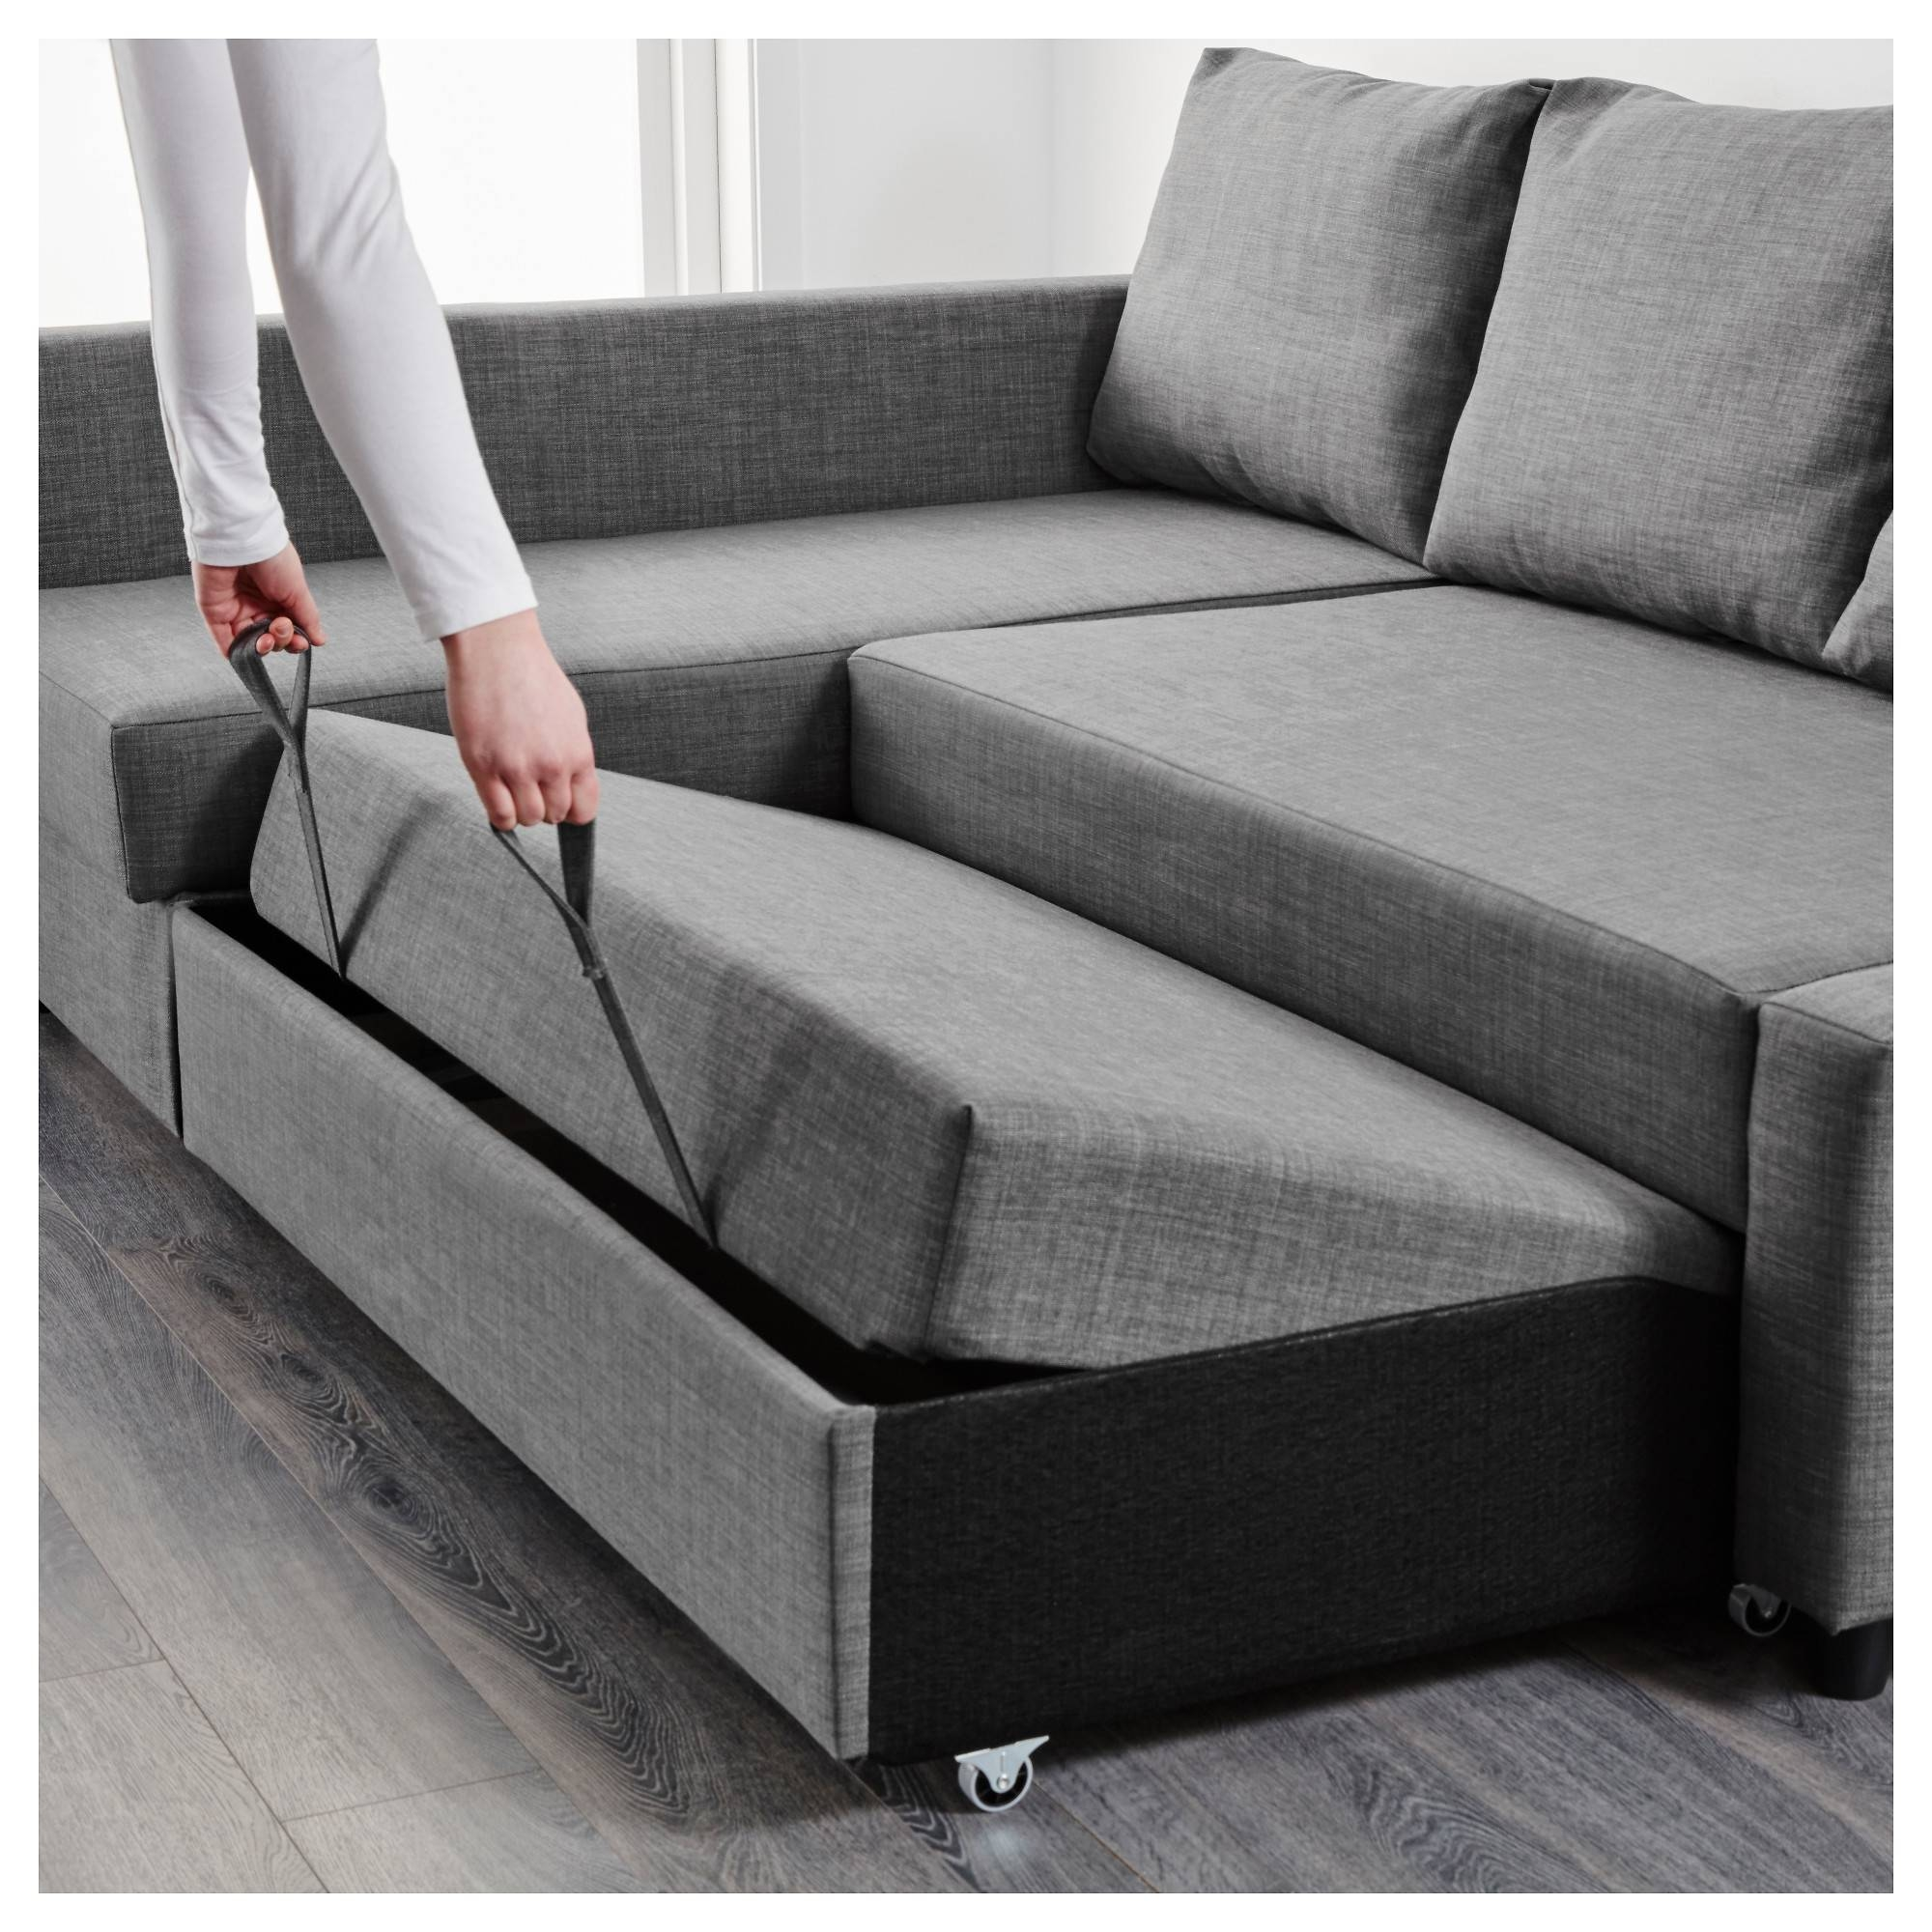 Friheten Corner Sofa-Bed With Storage Skiftebo Dark Grey - Ikea with Ikea Sofa Storage (Image 7 of 25)